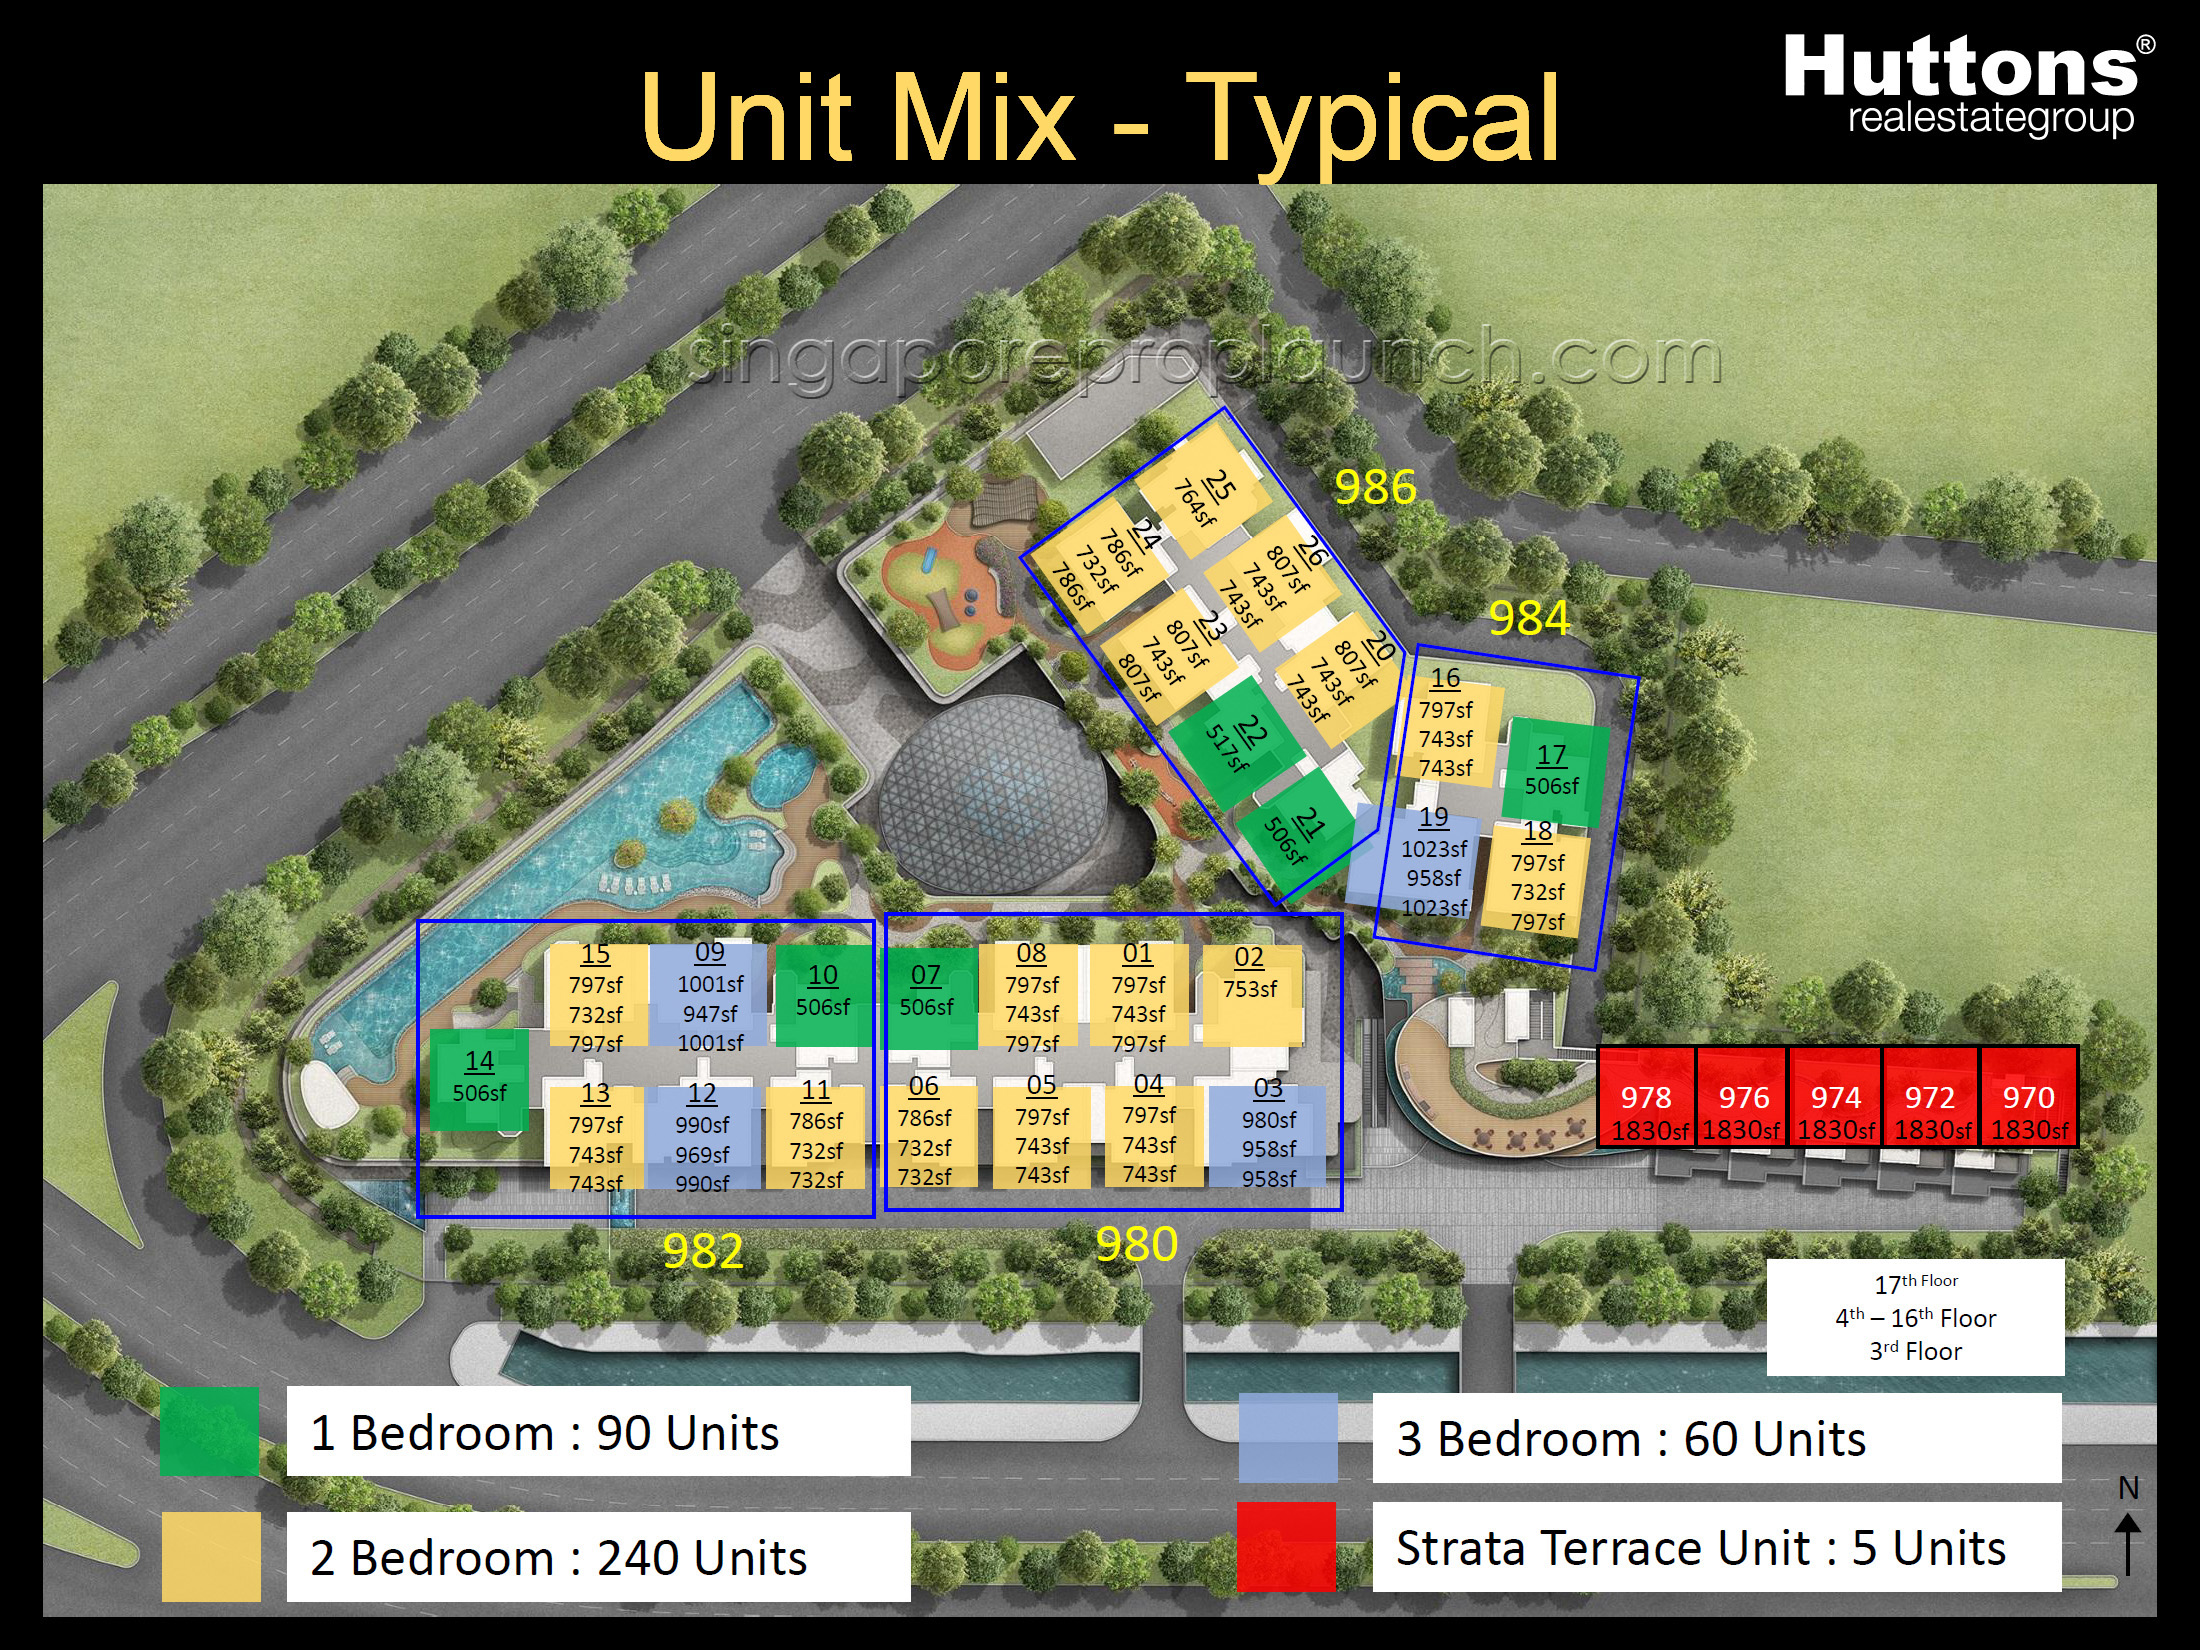 Site plan typical units